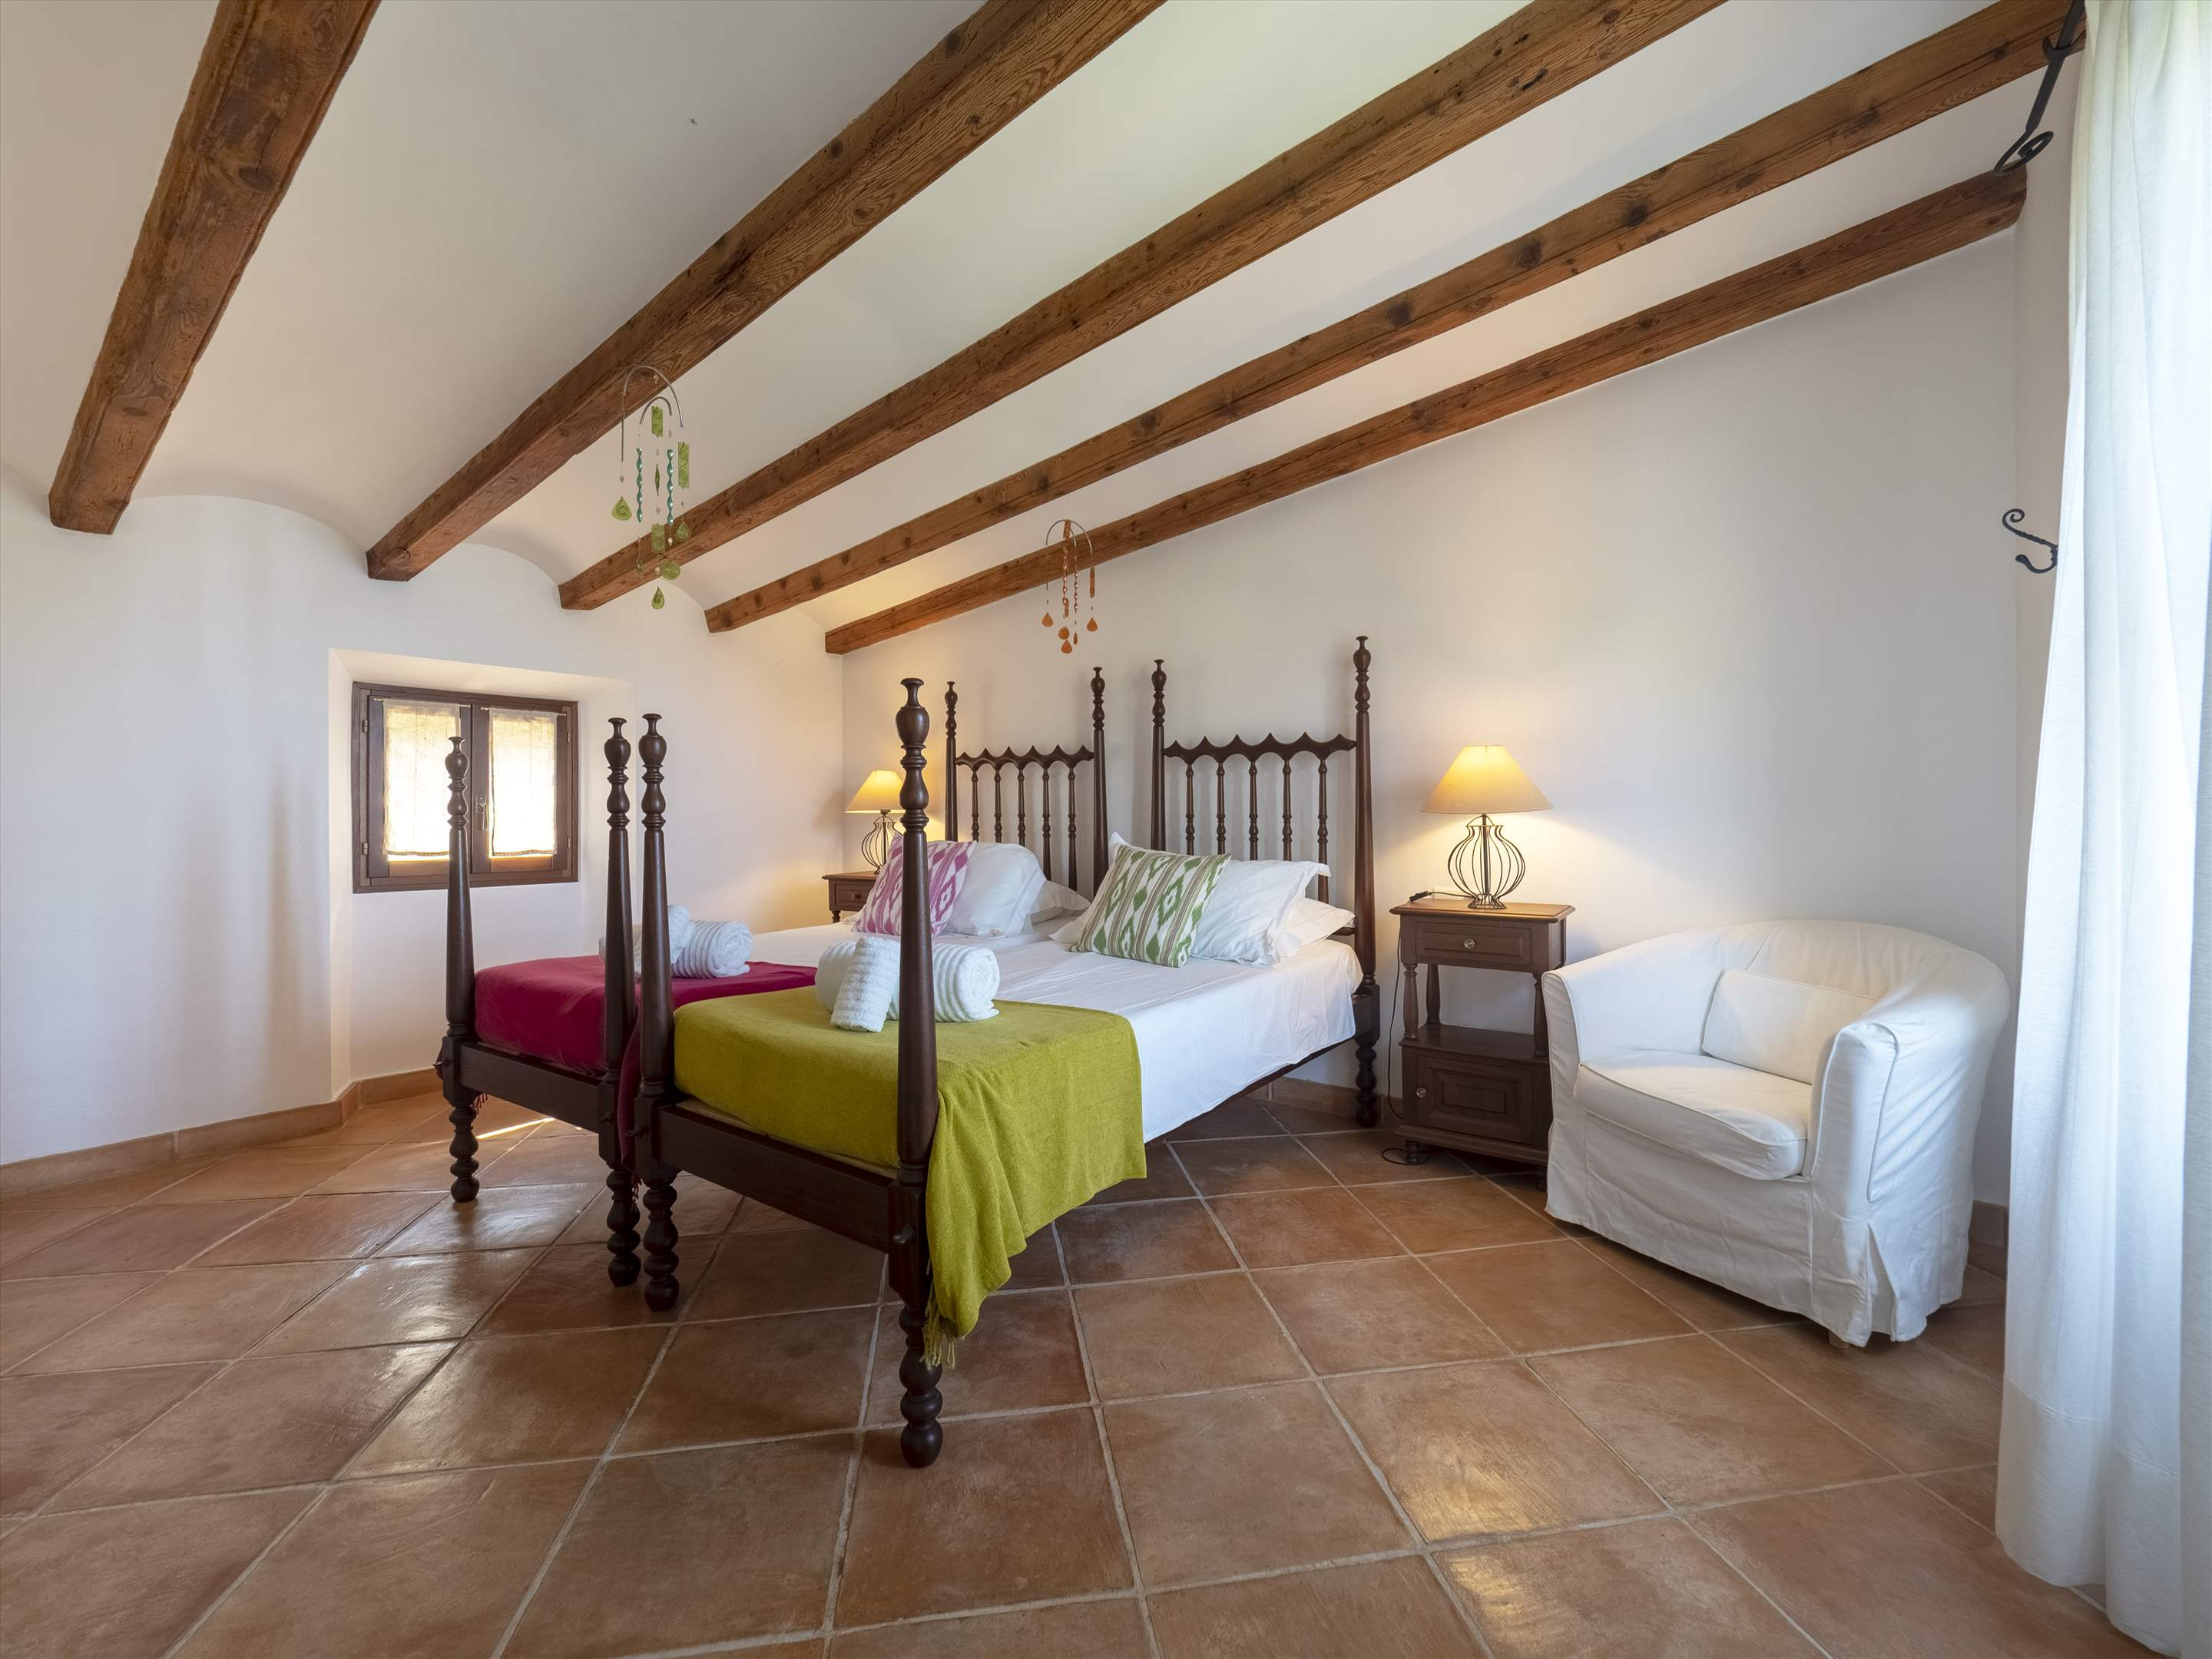 Sa Cala, 4 bedroom villa in Soller & Deia, Majorca Photo #28